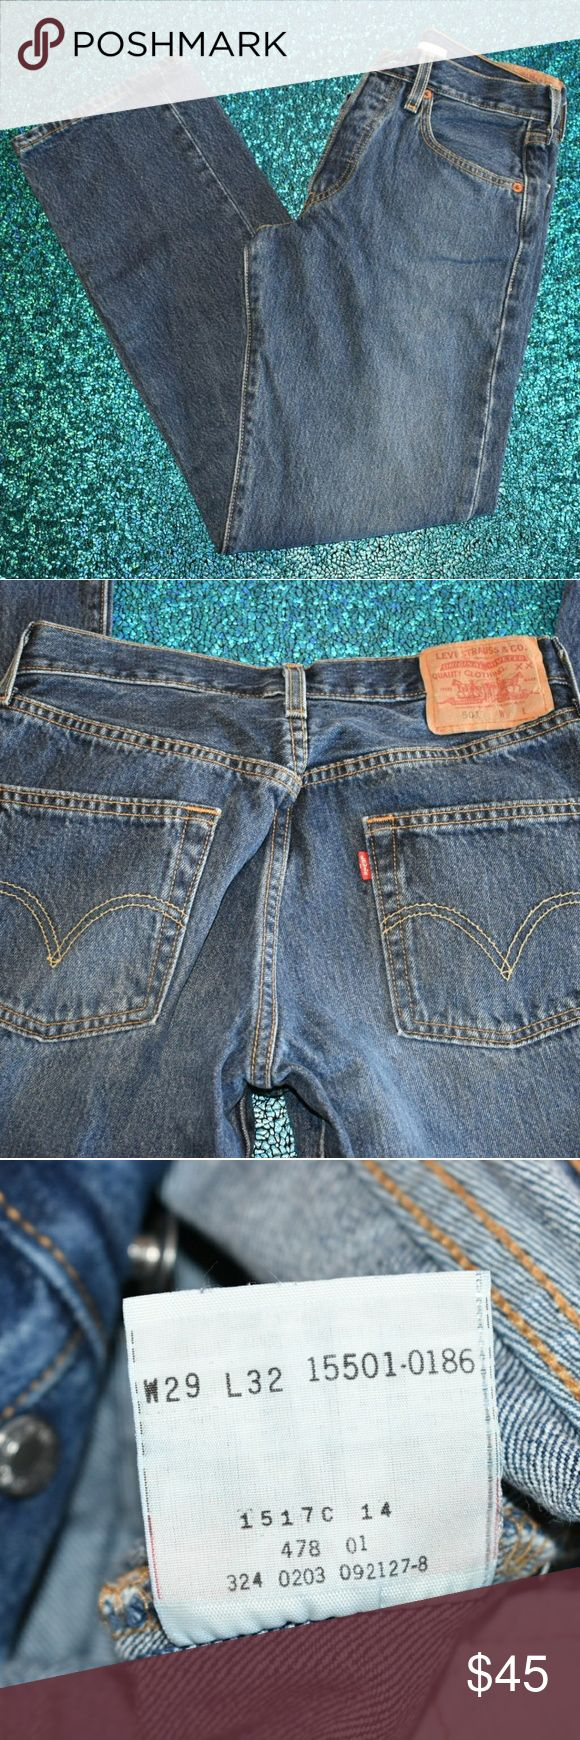 LEVI'S BUTTONFLY WOMEN'S JEANS 501 pre-owned but still in perfect condition no holes or stains  W29 L32 Levi's Jeans